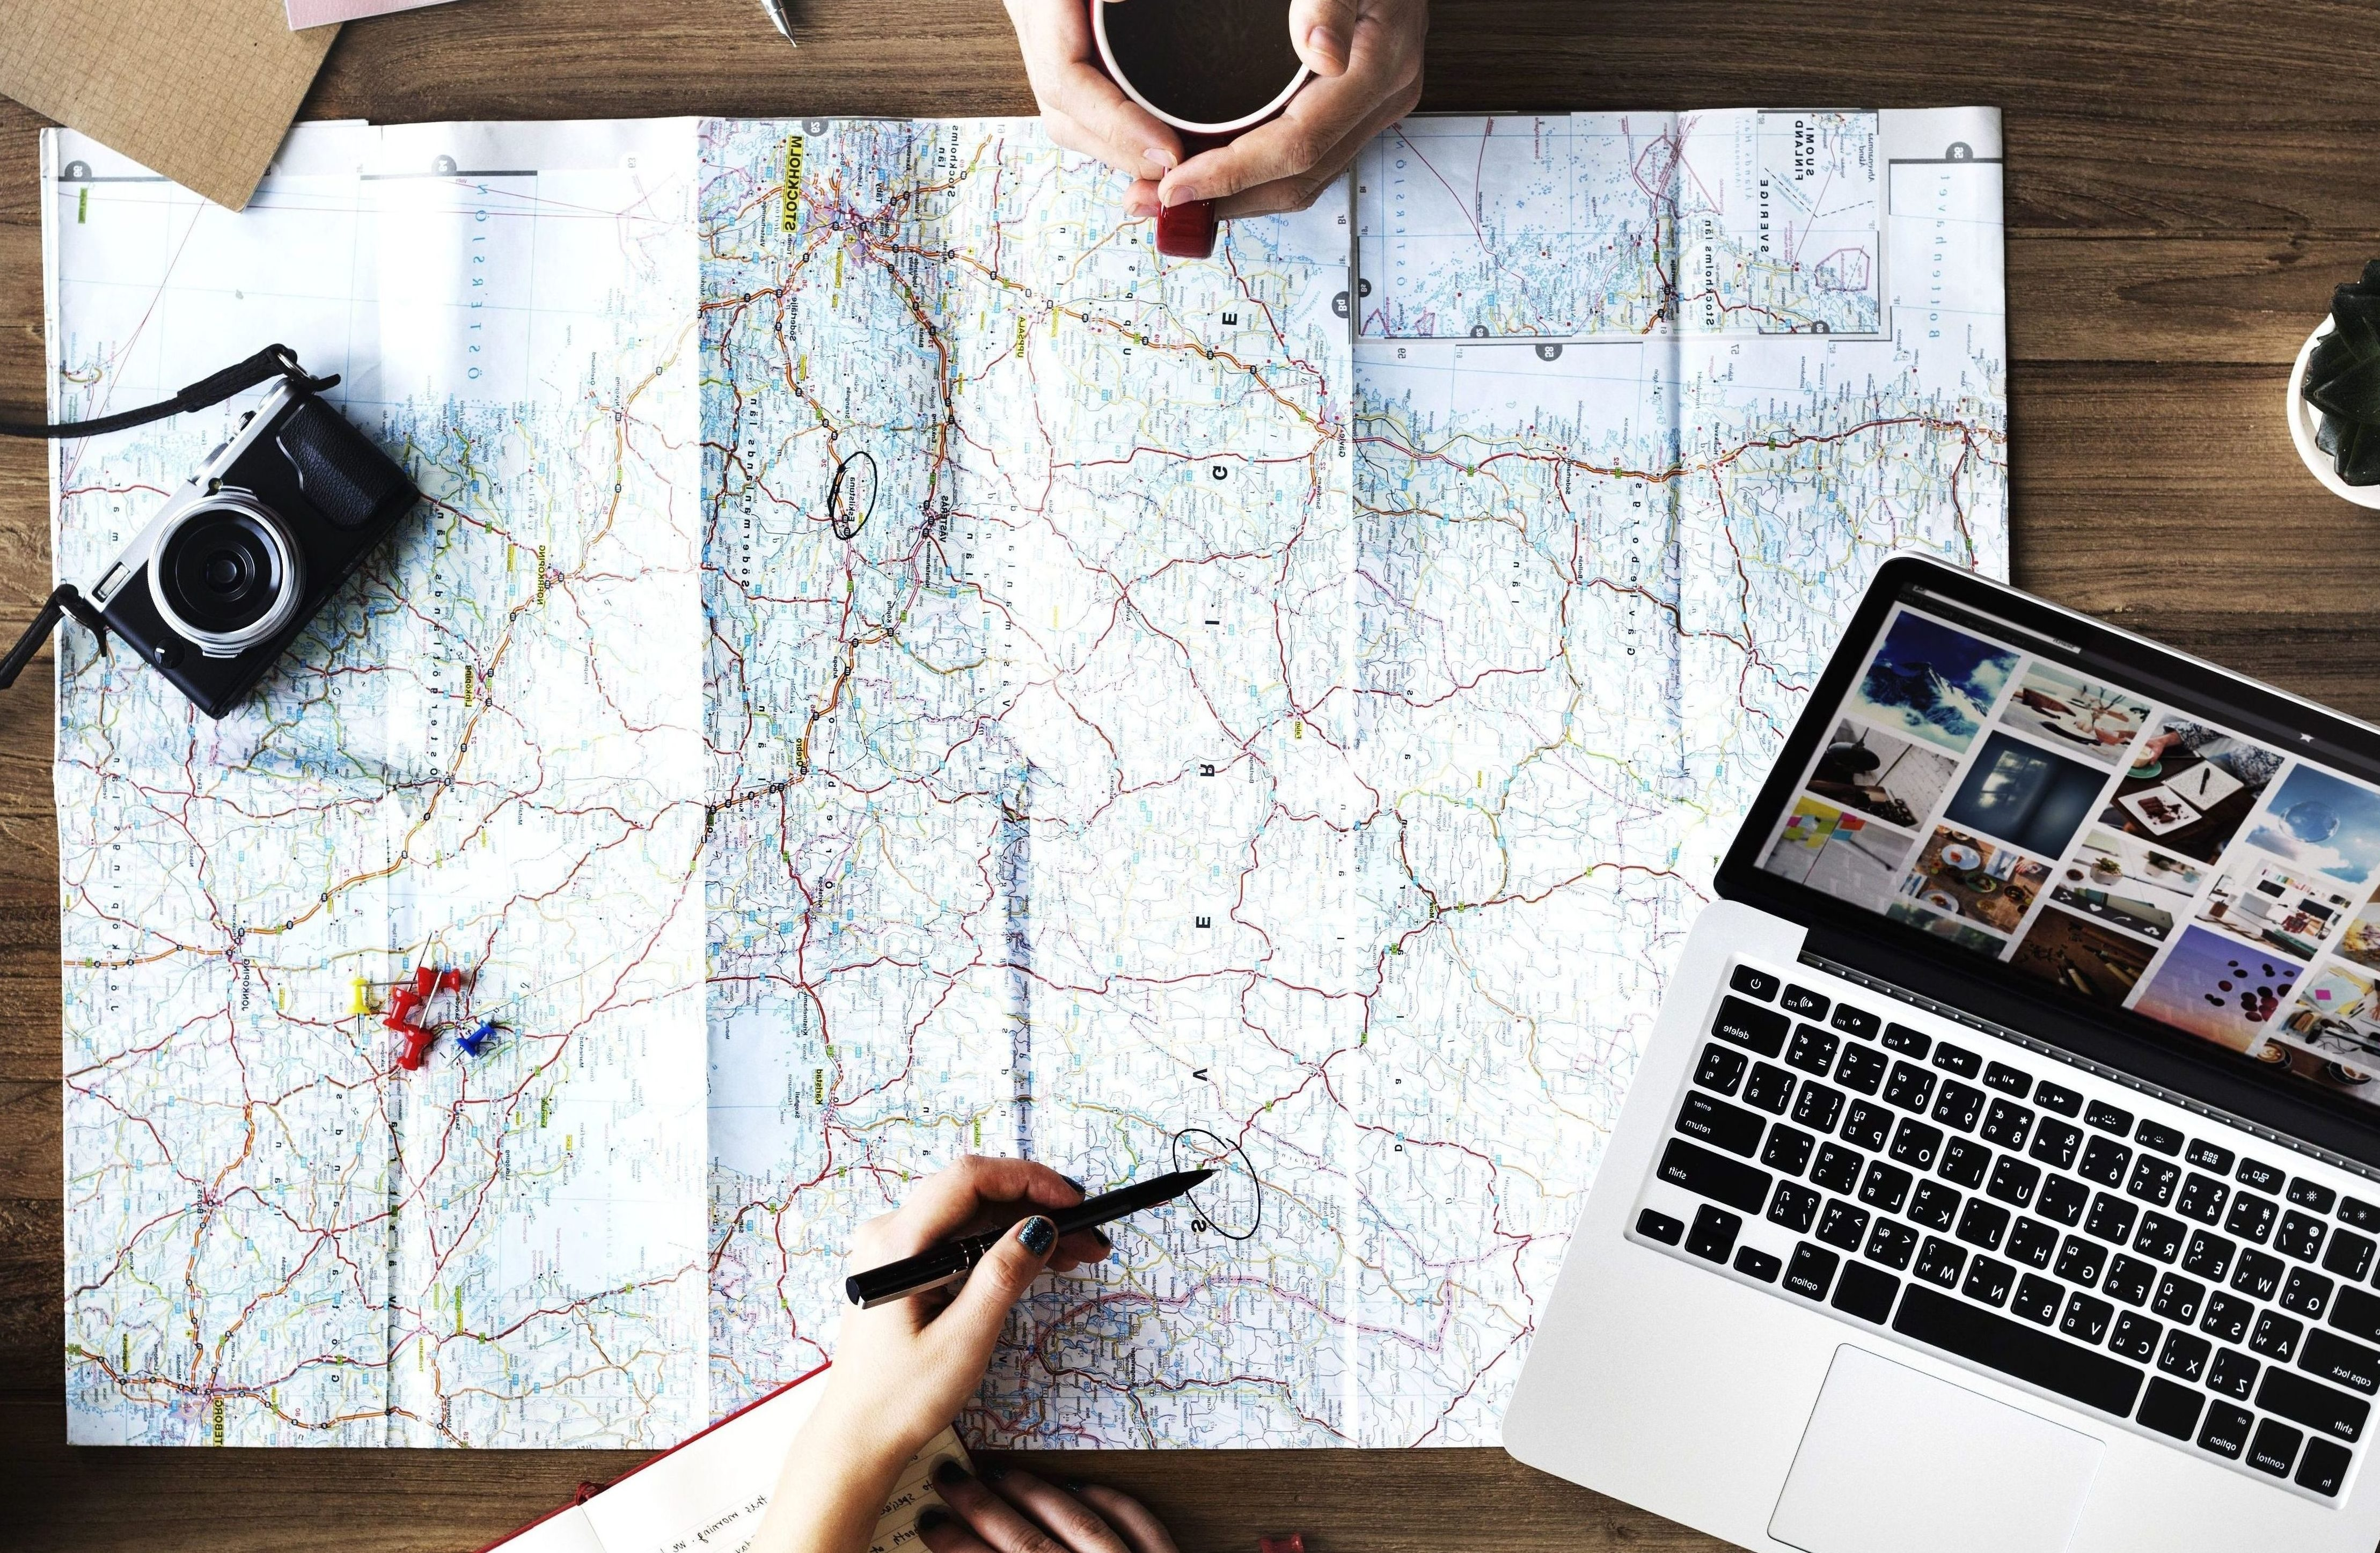 Free Picture Laptop Computer Map Plan Journey Photo Camera Pencil